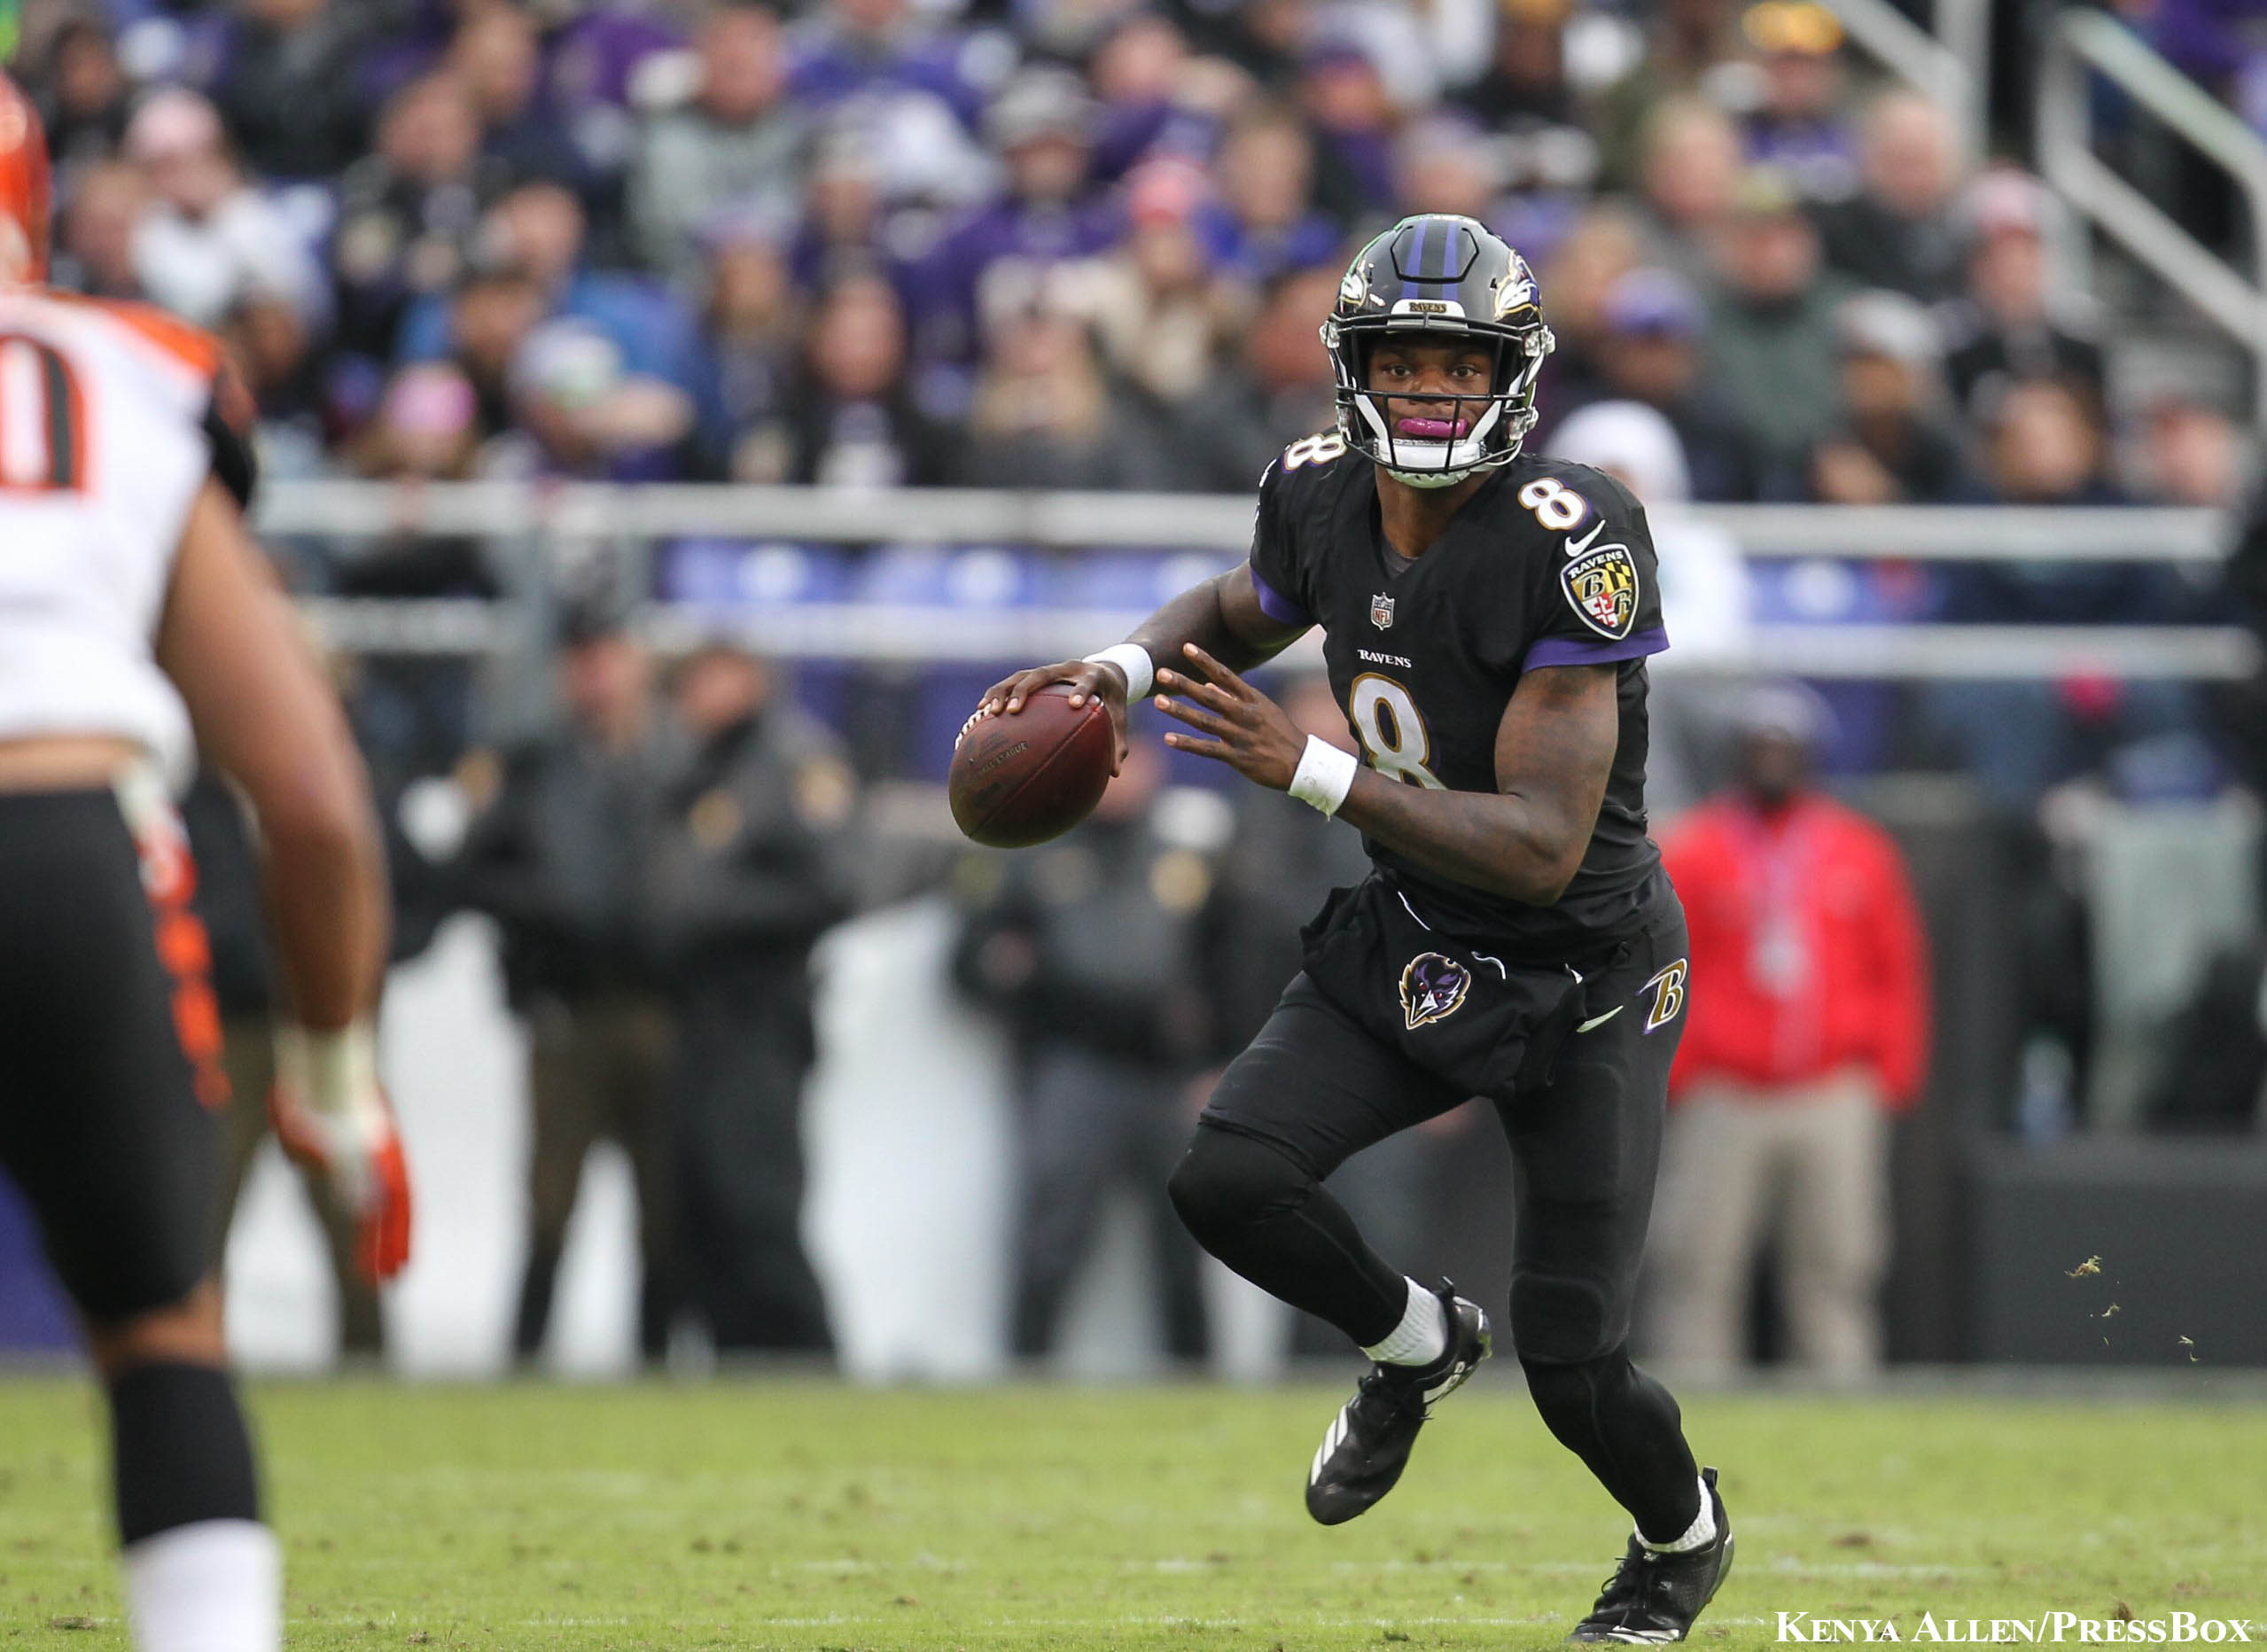 Eck 24 Five Takeaways From The Ravens' 24-21 Win Against The Bengals